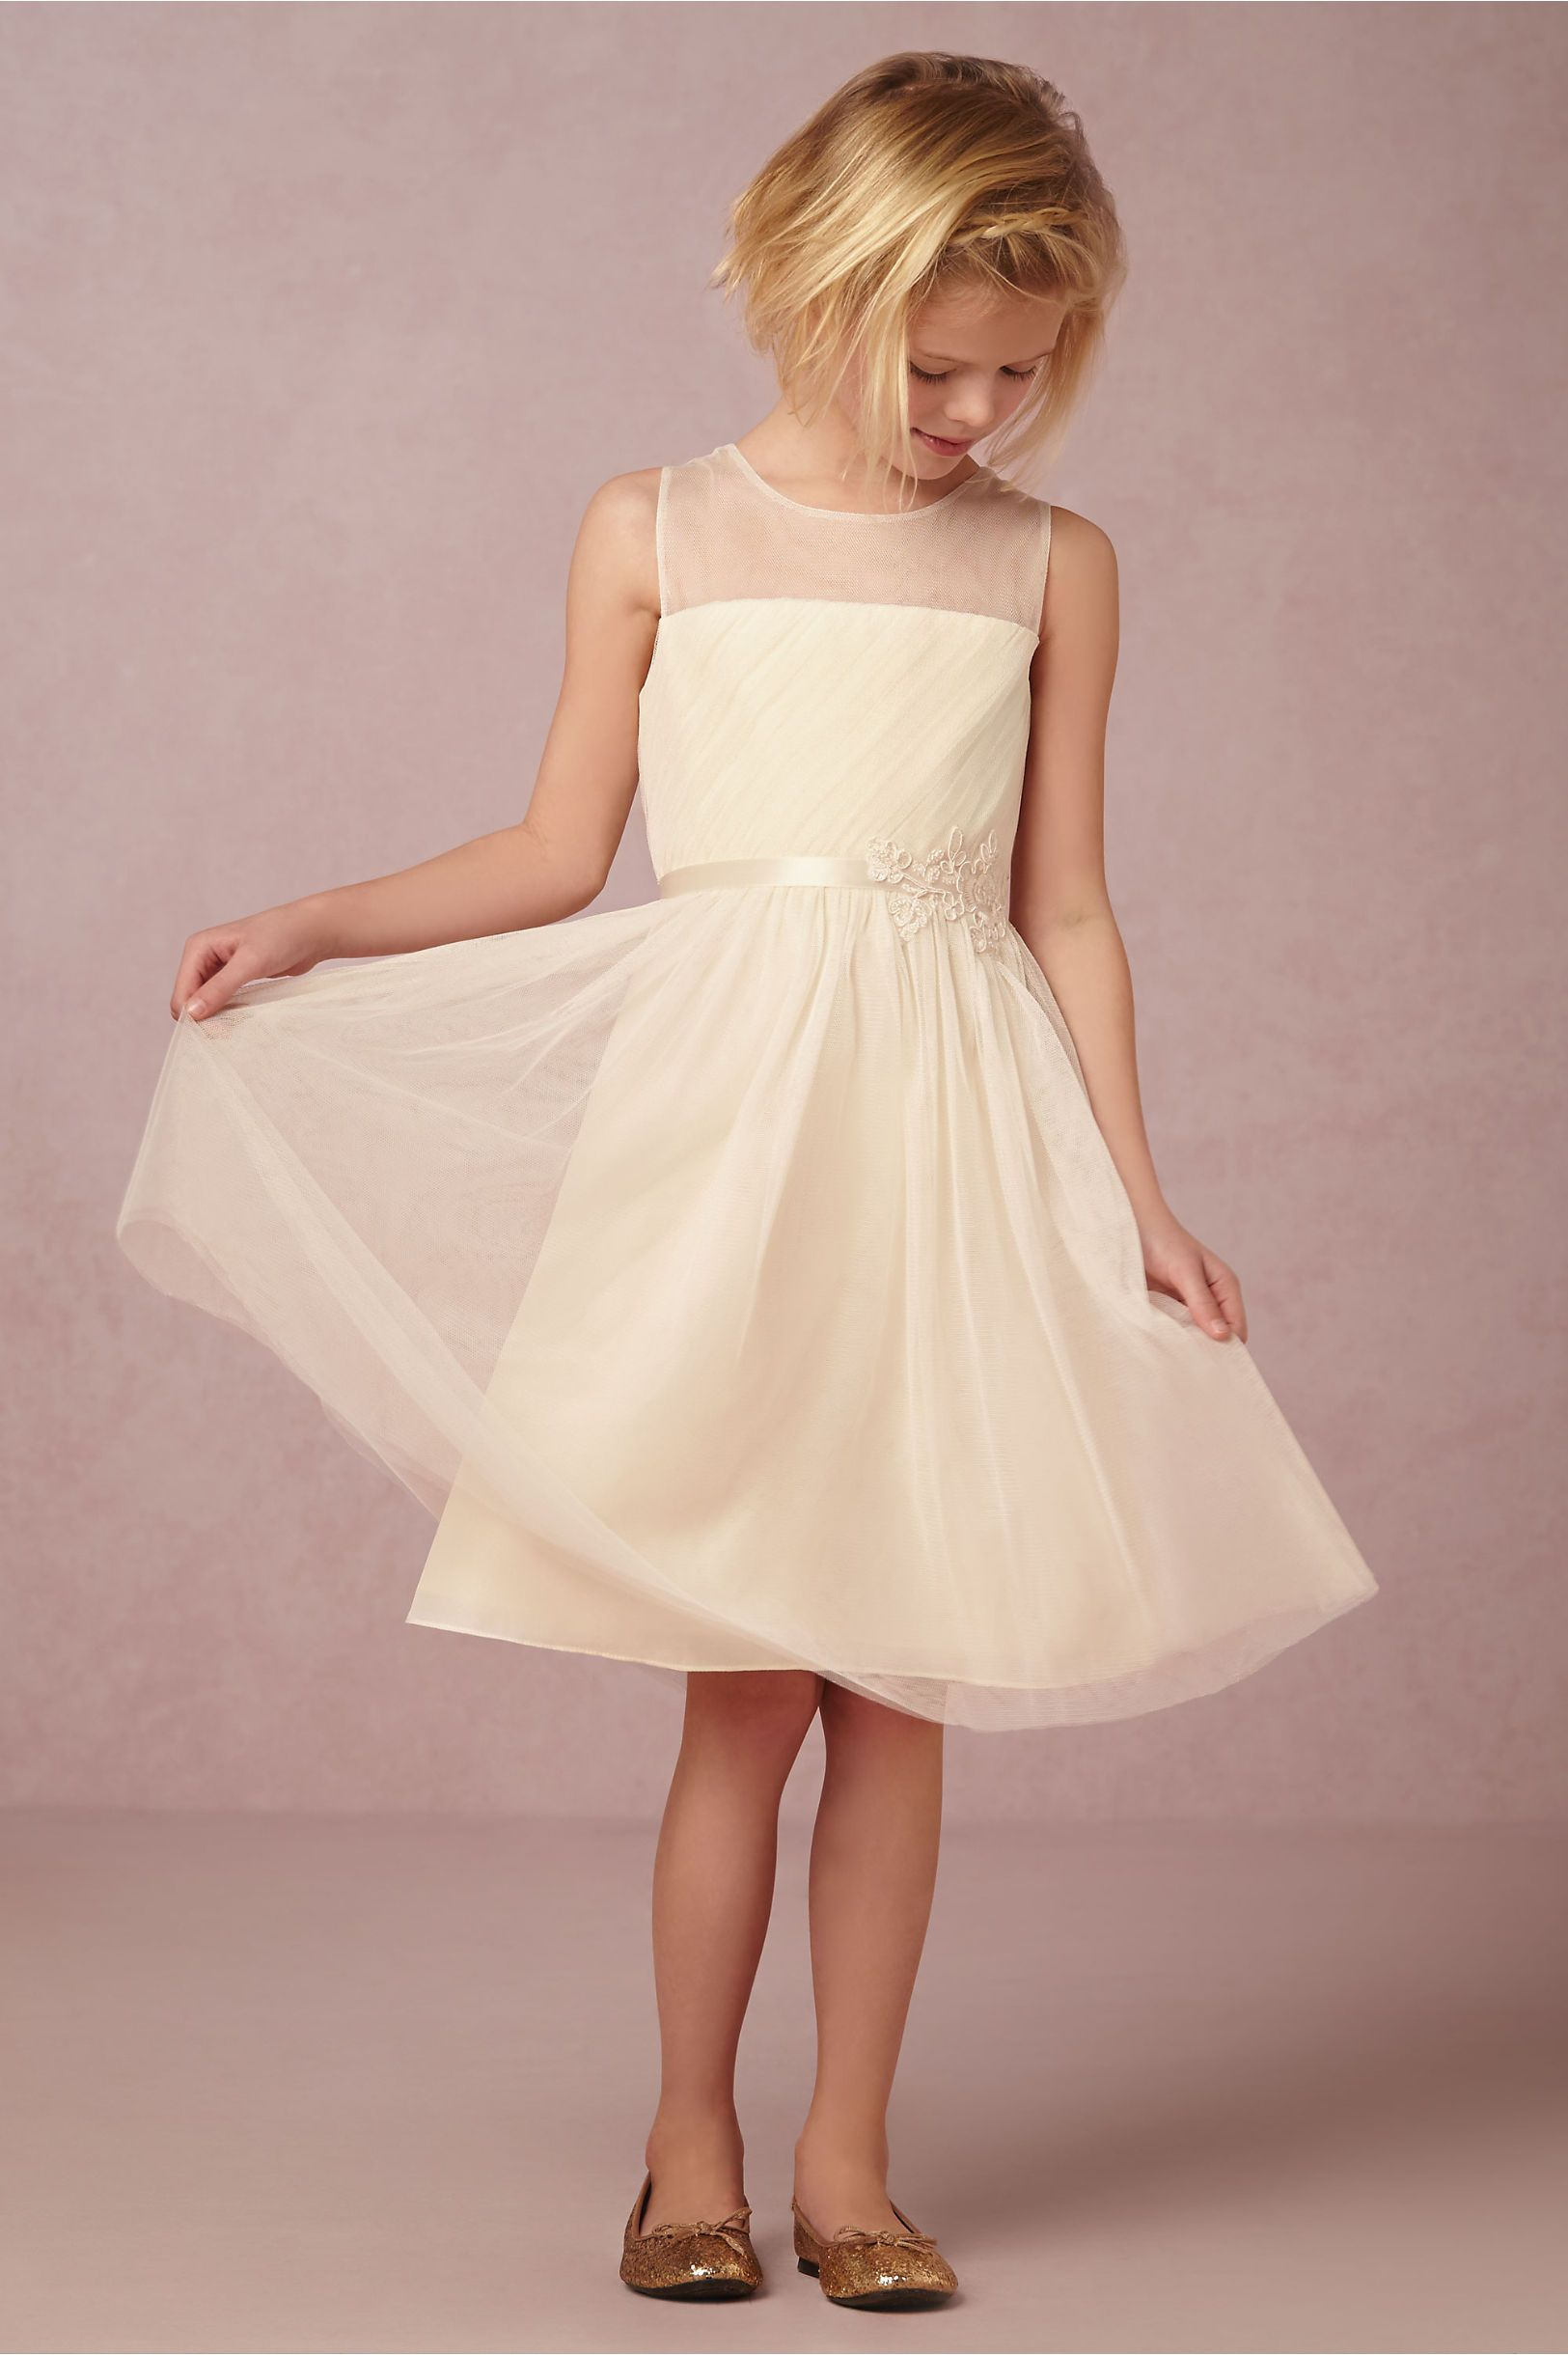 Elodie Flower Girl Dress from BHLDN | Flower Girls & Ring Bearers ...